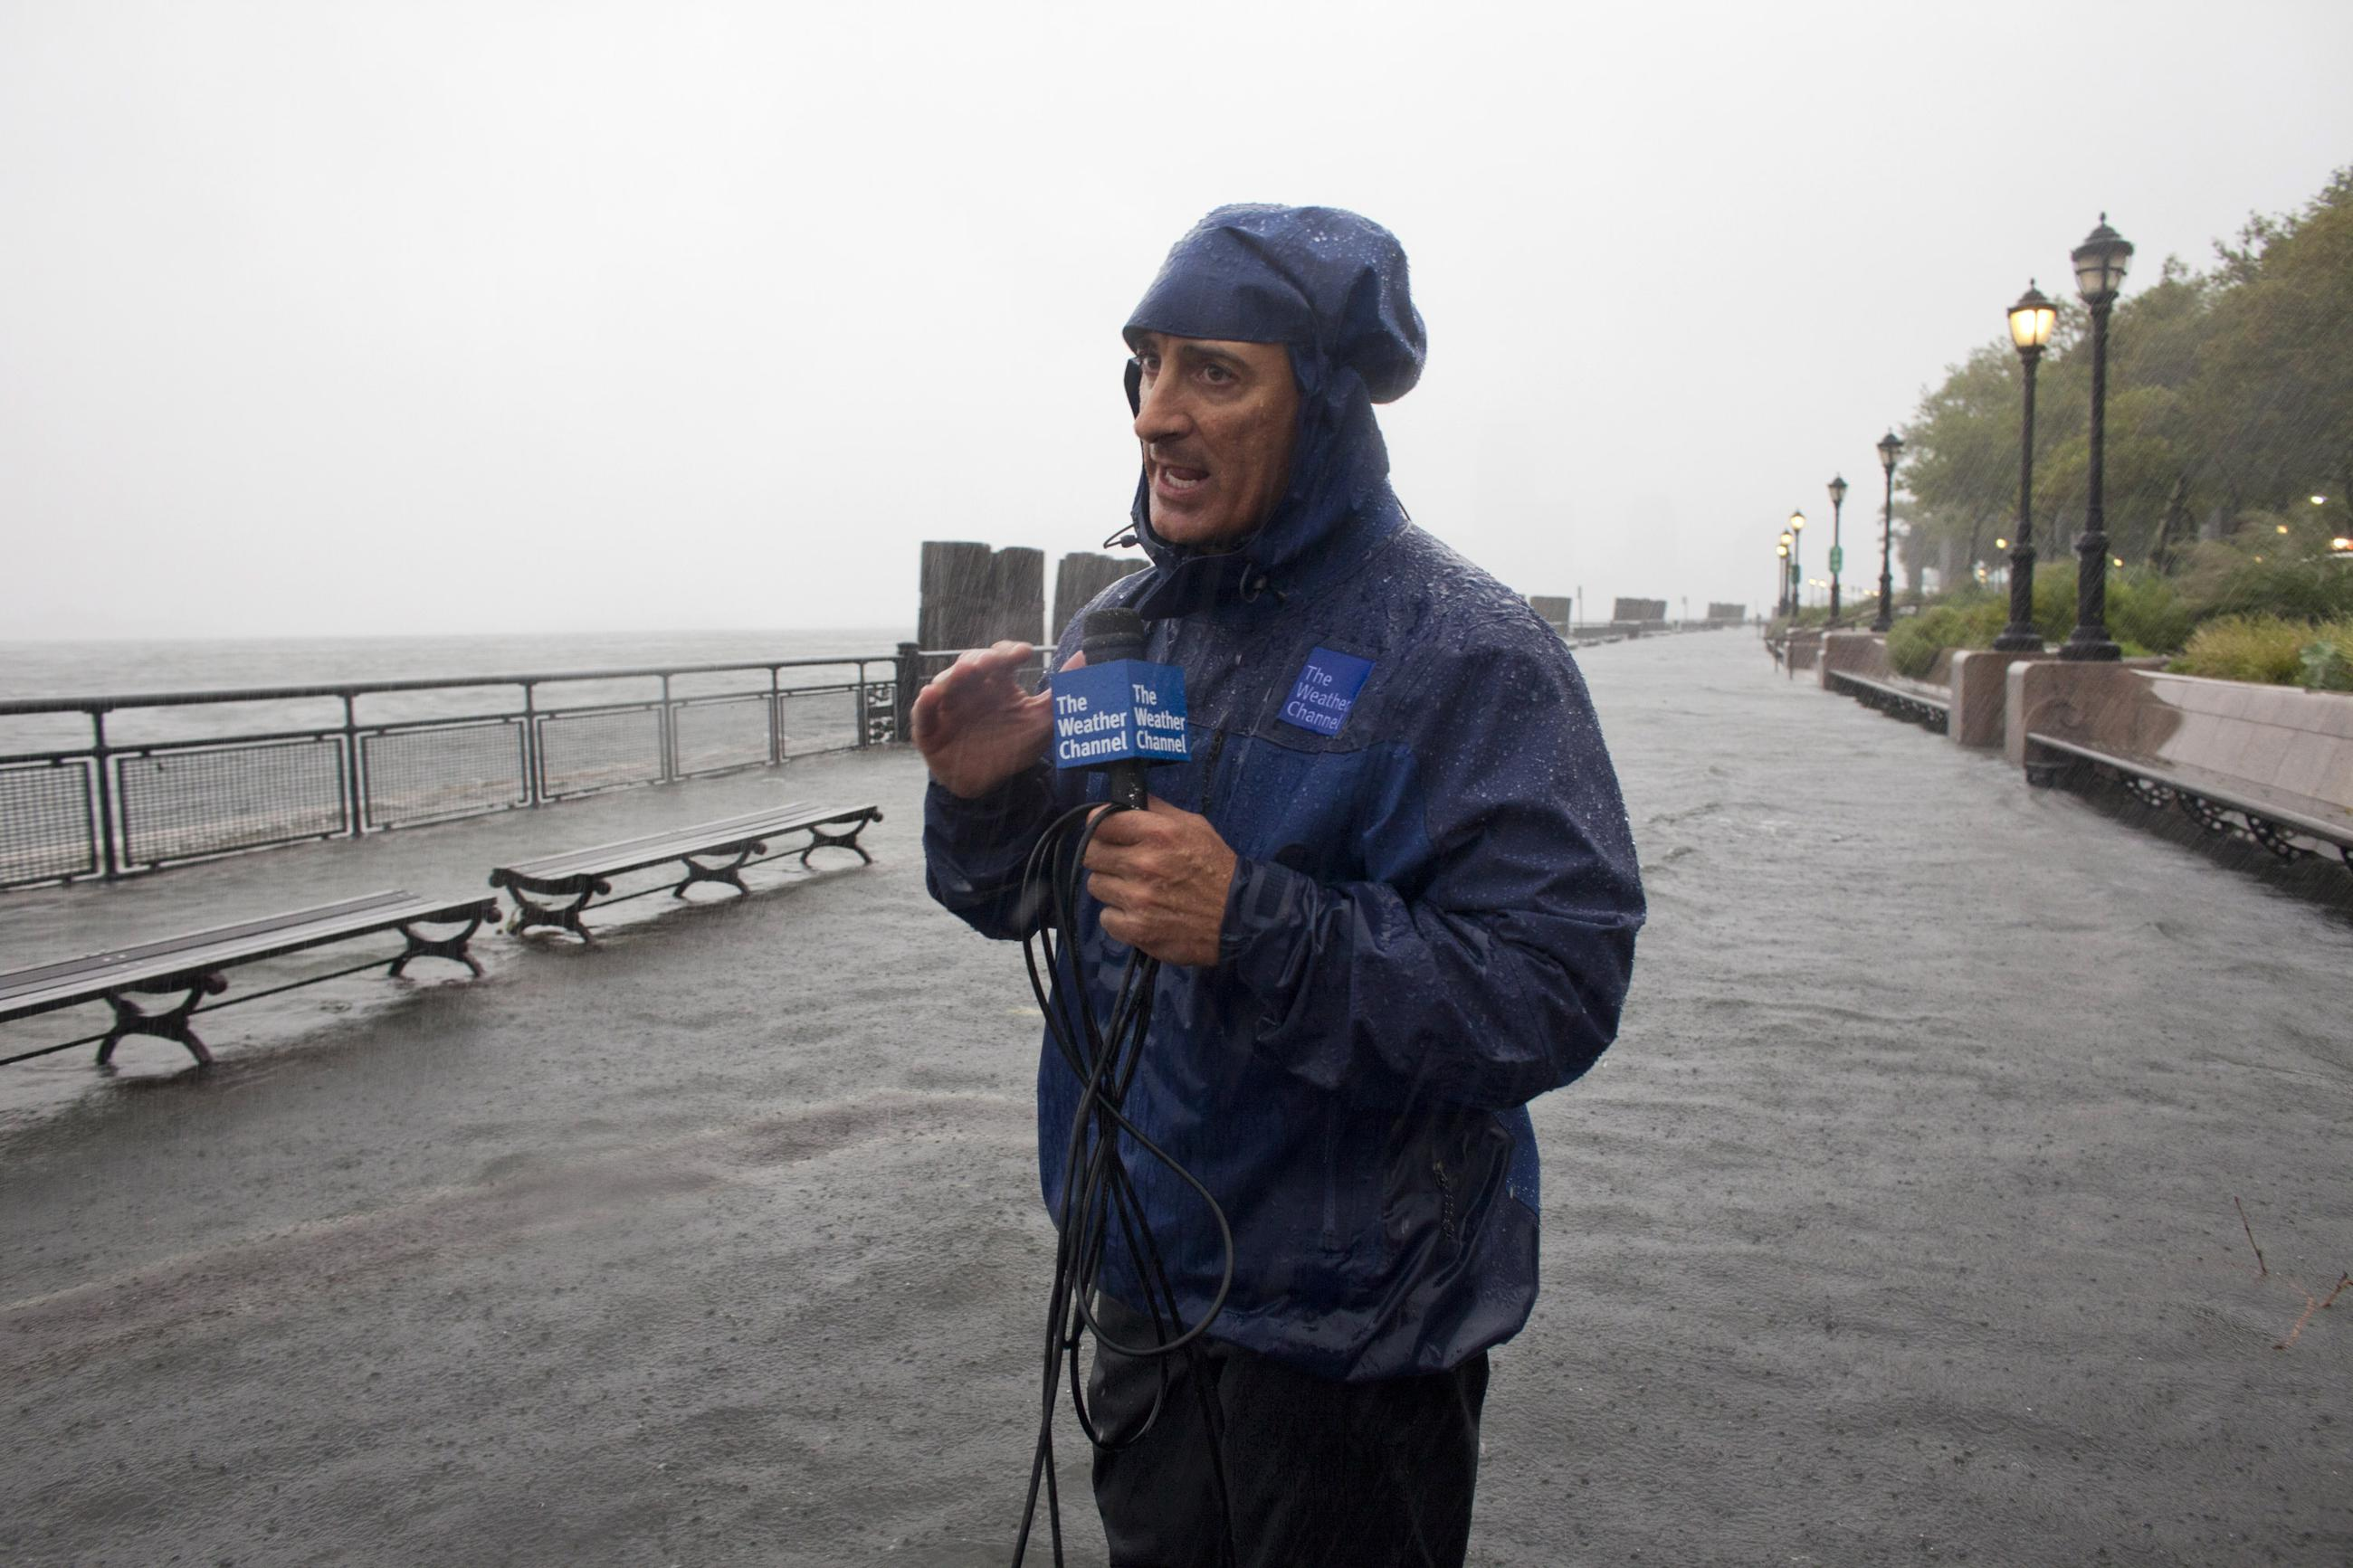 DirecTV Just Lost the Weather Channel